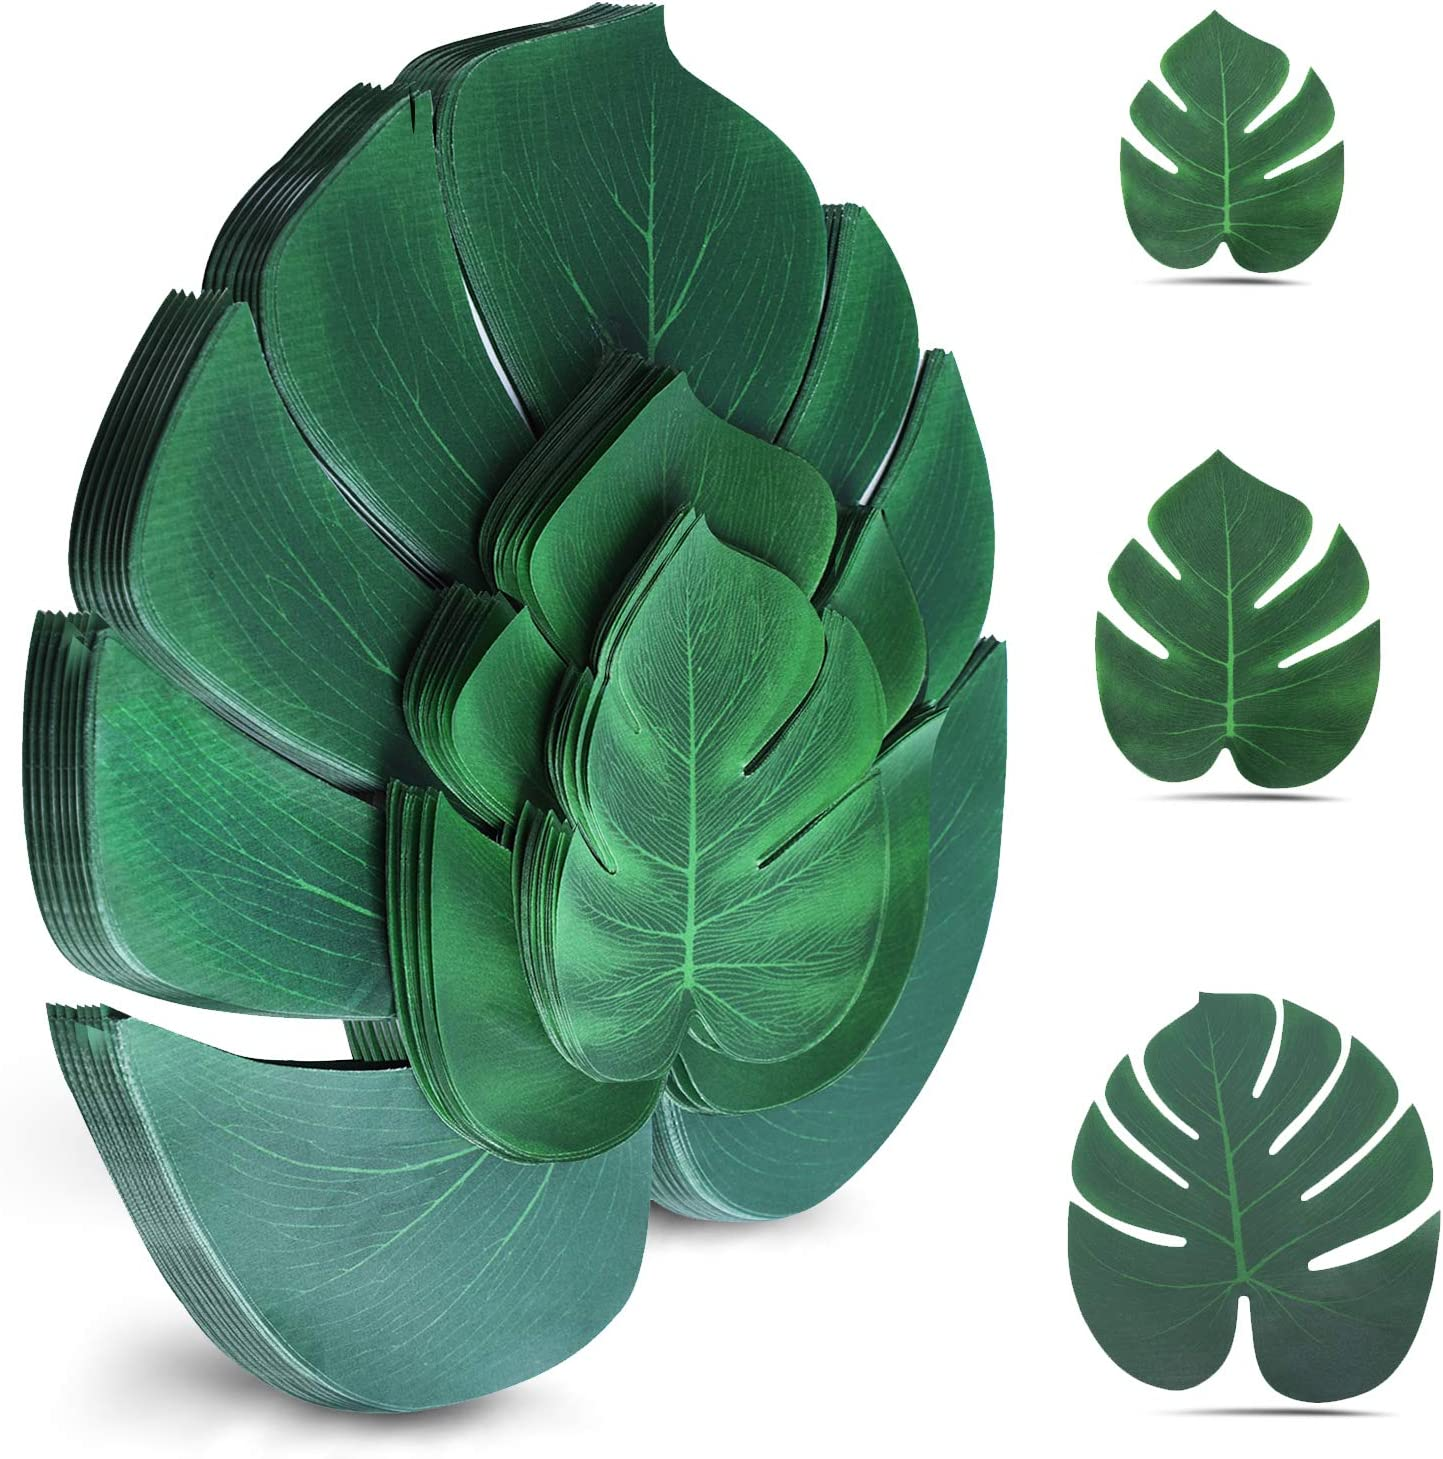 Palm Leaves Artificial Tropical Monstera Plant 100Pcs Fake Leaves Safari Birthday Decorations,Jungle Theme Party Supplies,Faux Green Leaf for Hawaiian Luau Tiki Aloha Beach BBQ Table Decoration 3 Size